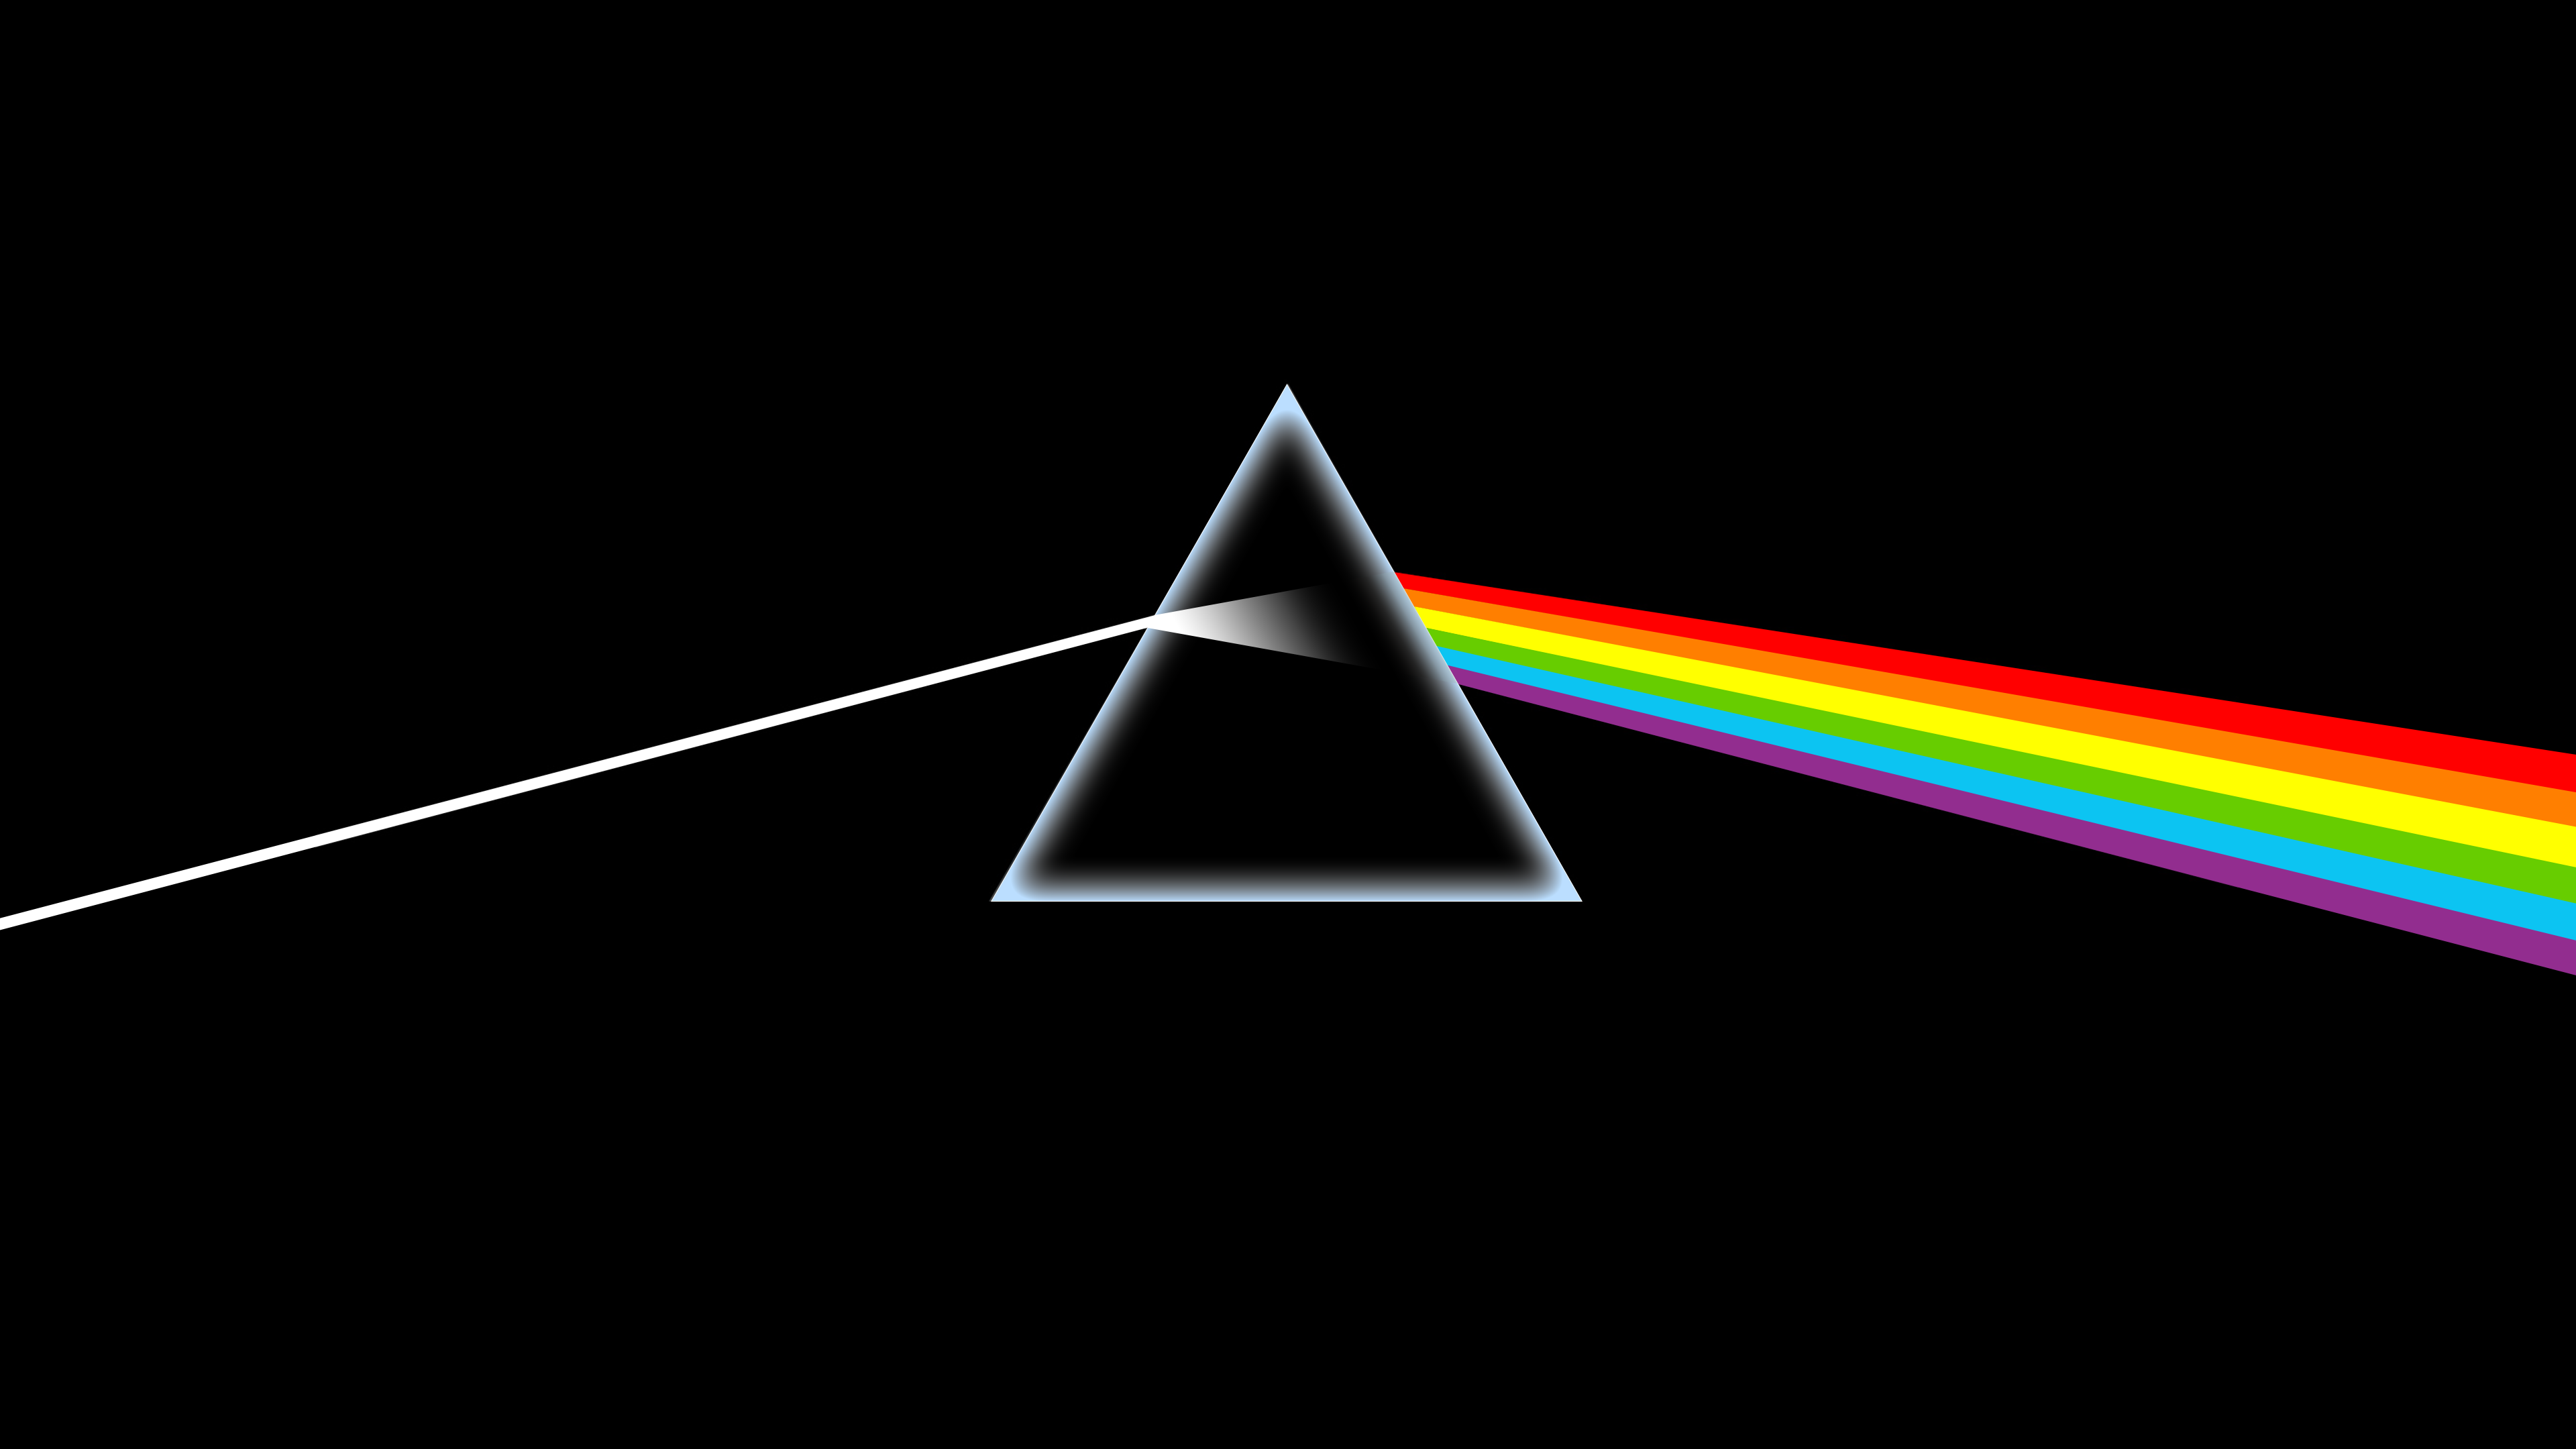 The Dark Side Of The Moon Album Cover Upscaled To 4k Oc